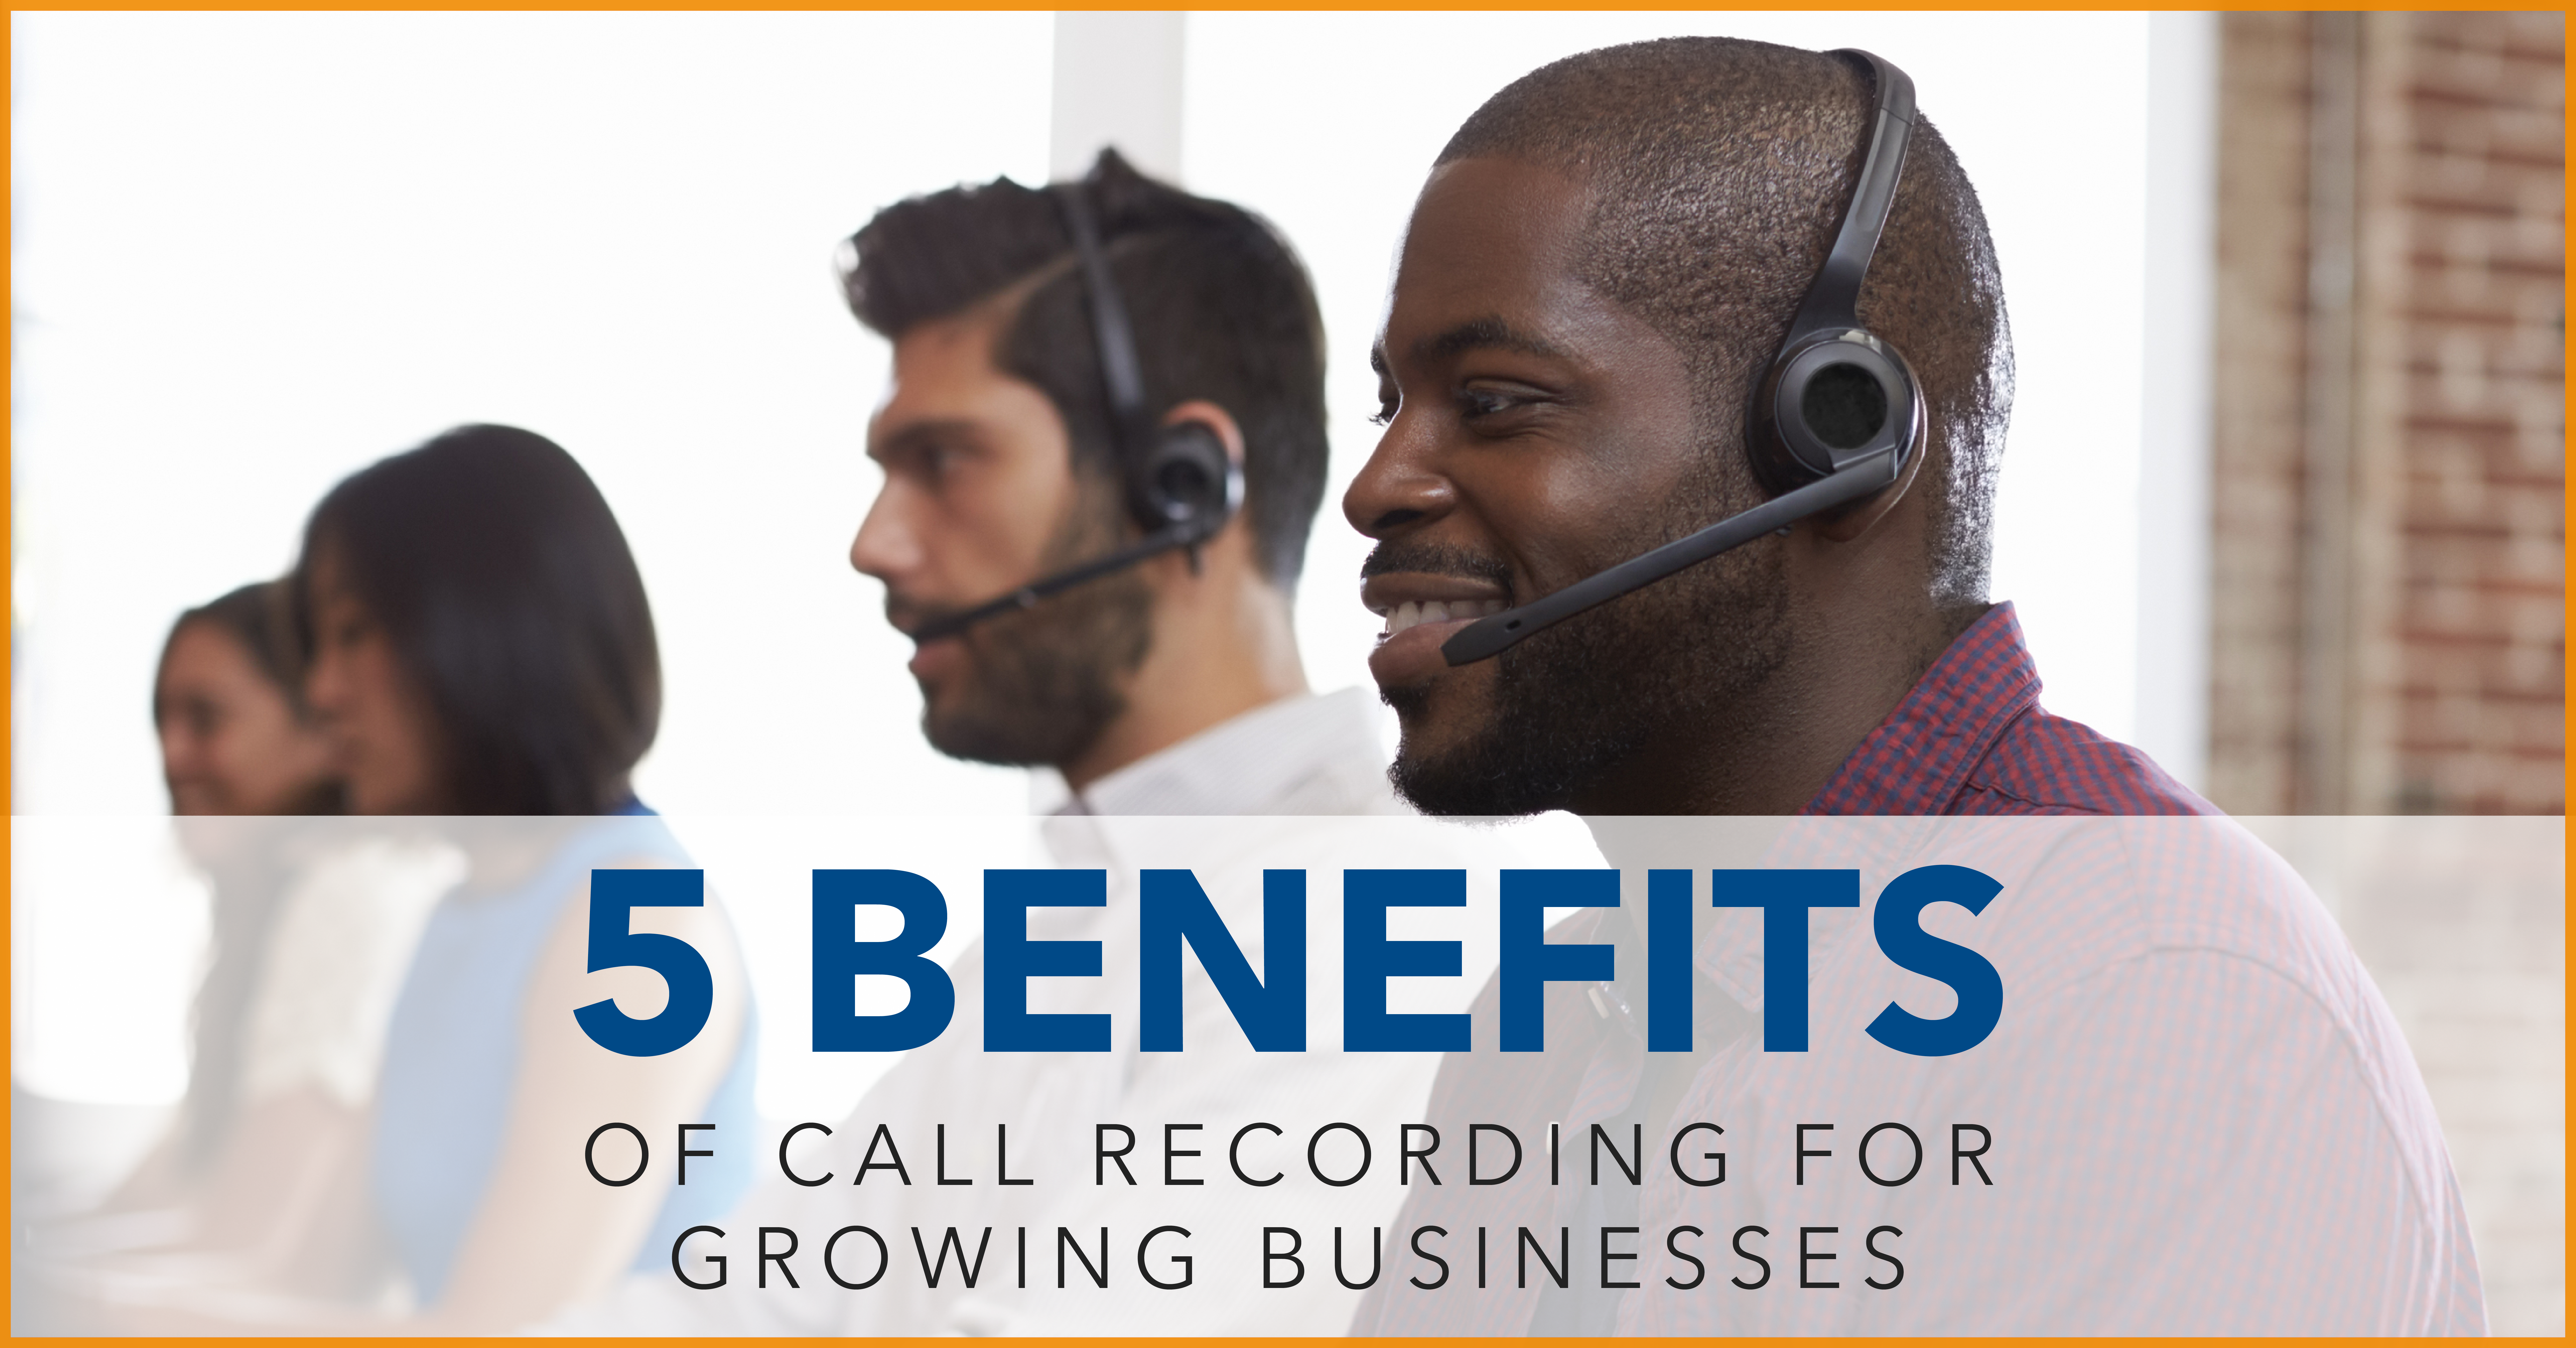 5 Benefits of Call Recording for Growing Businesses